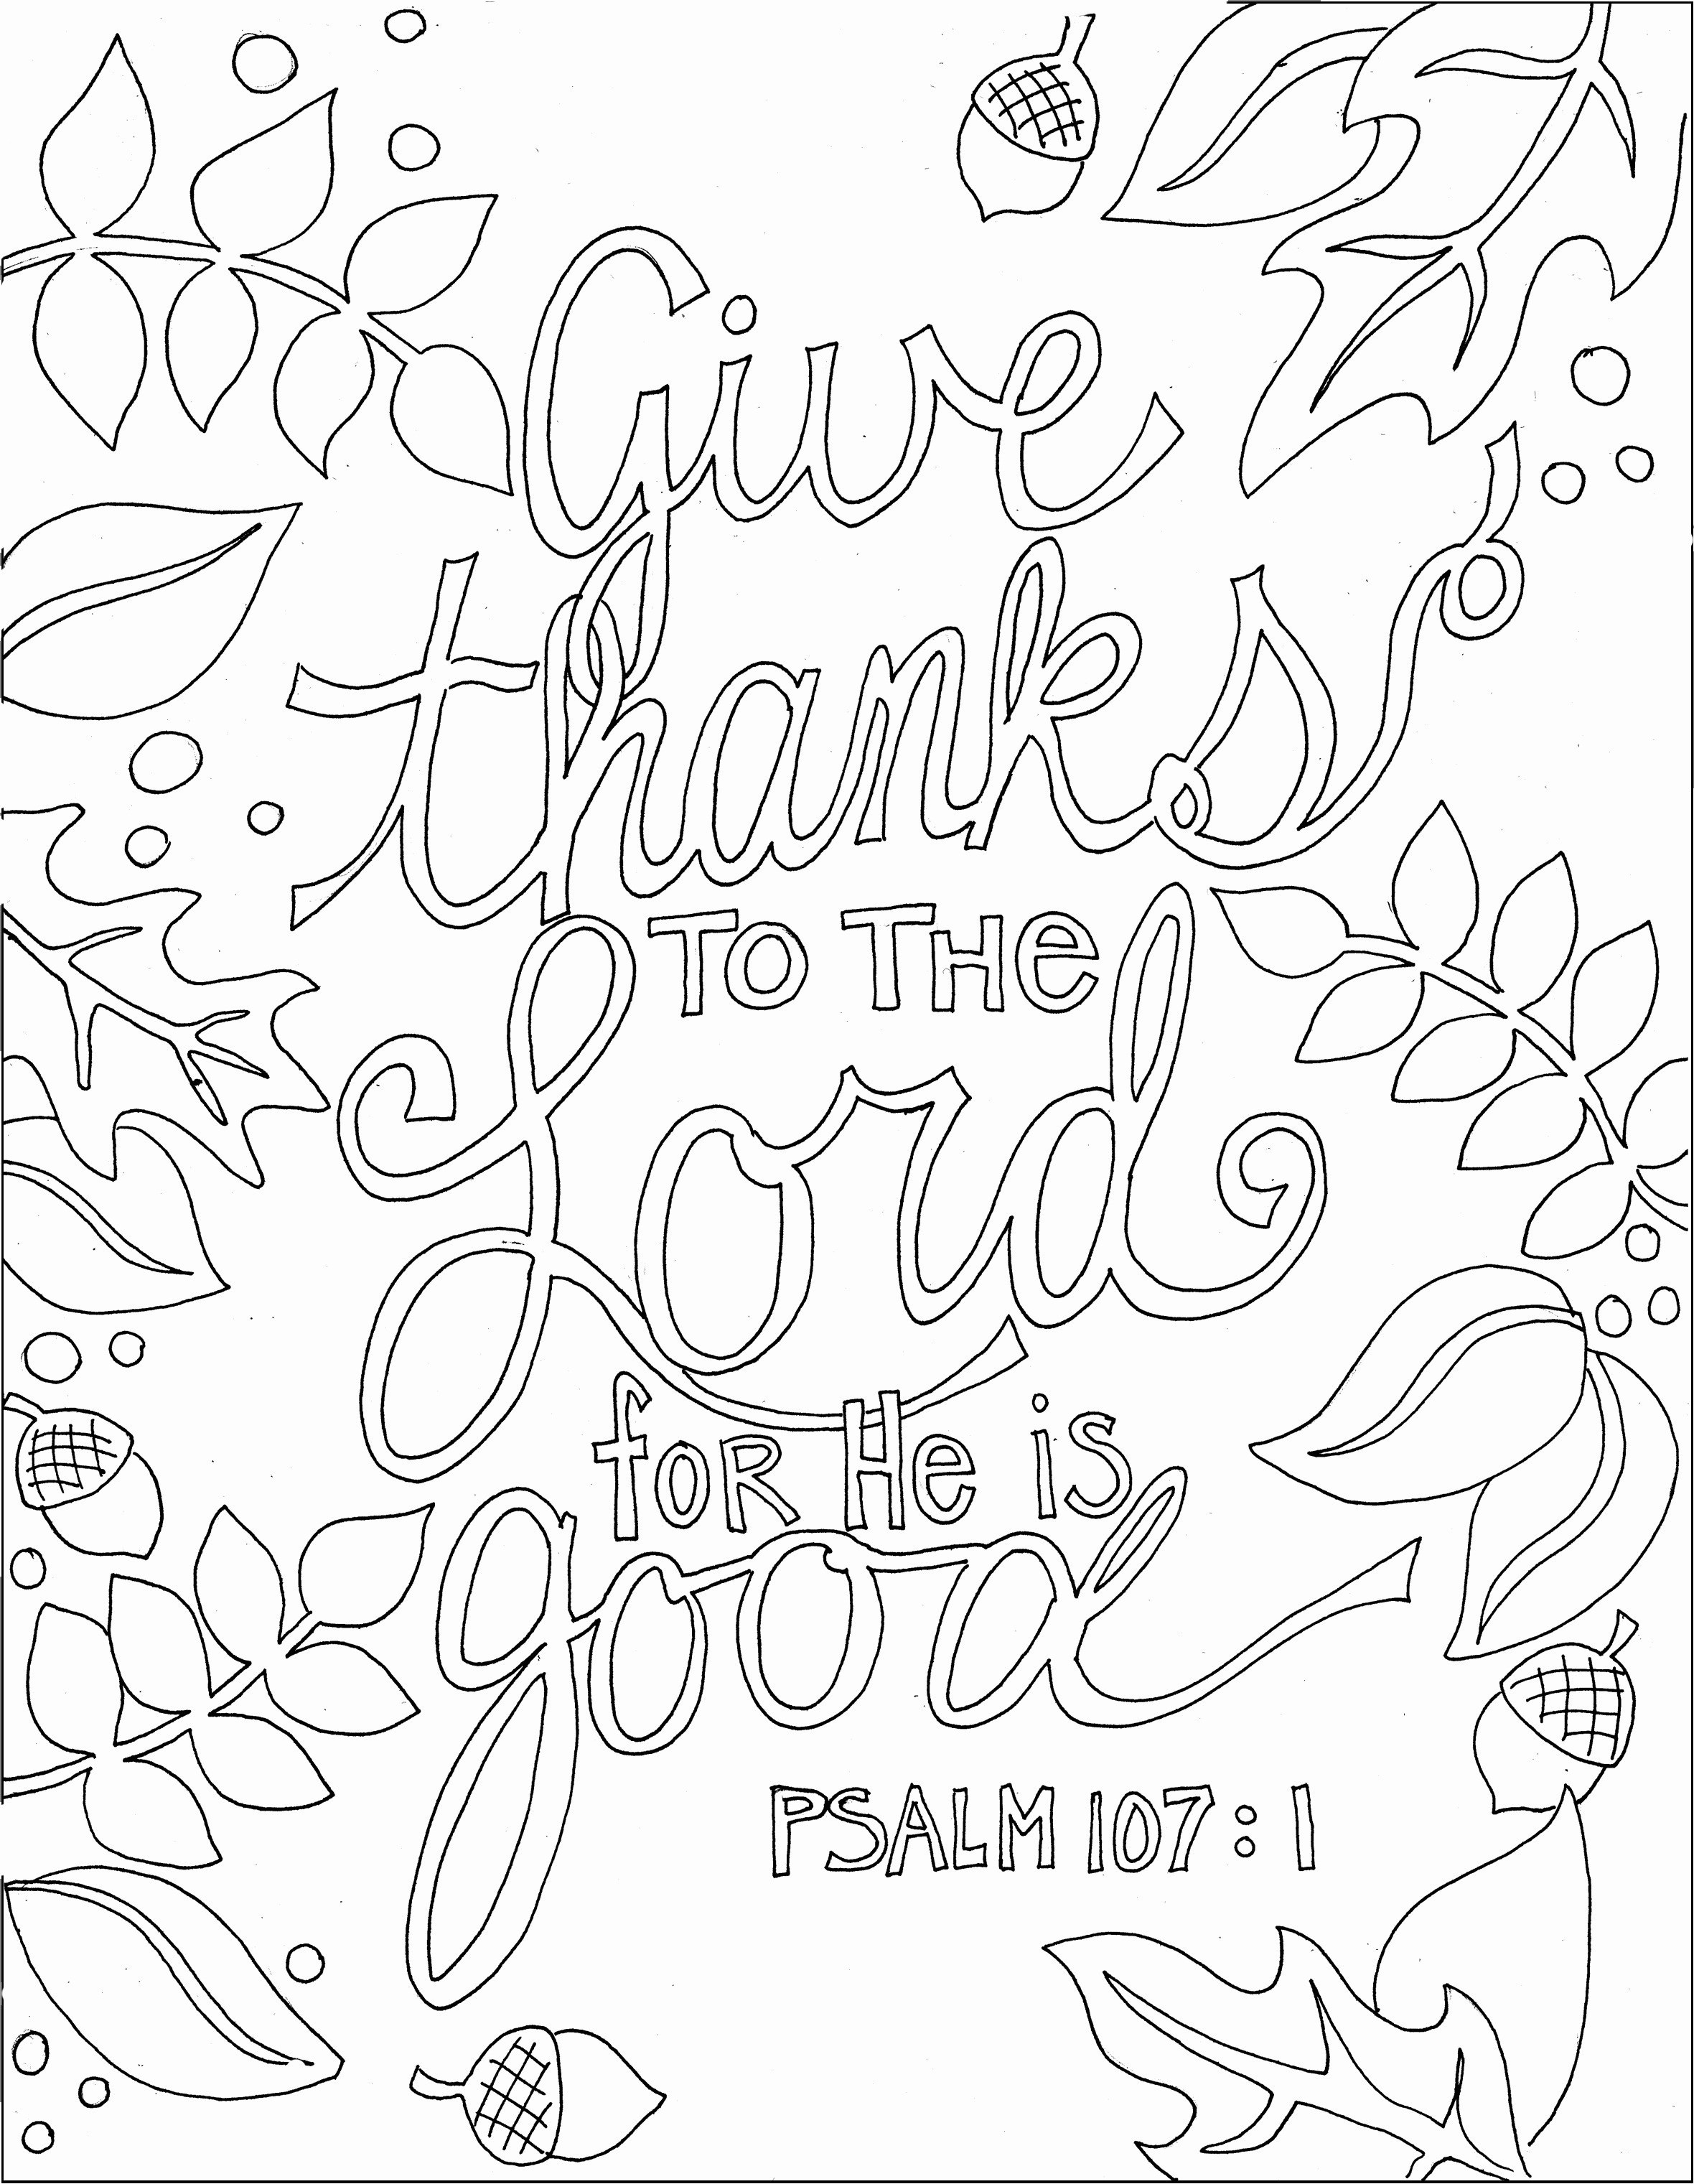 Coloring Pages Bible Stories Free Unique Bible Verse Coloring Pages - Free Printable Bible Coloring Pages With Scriptures